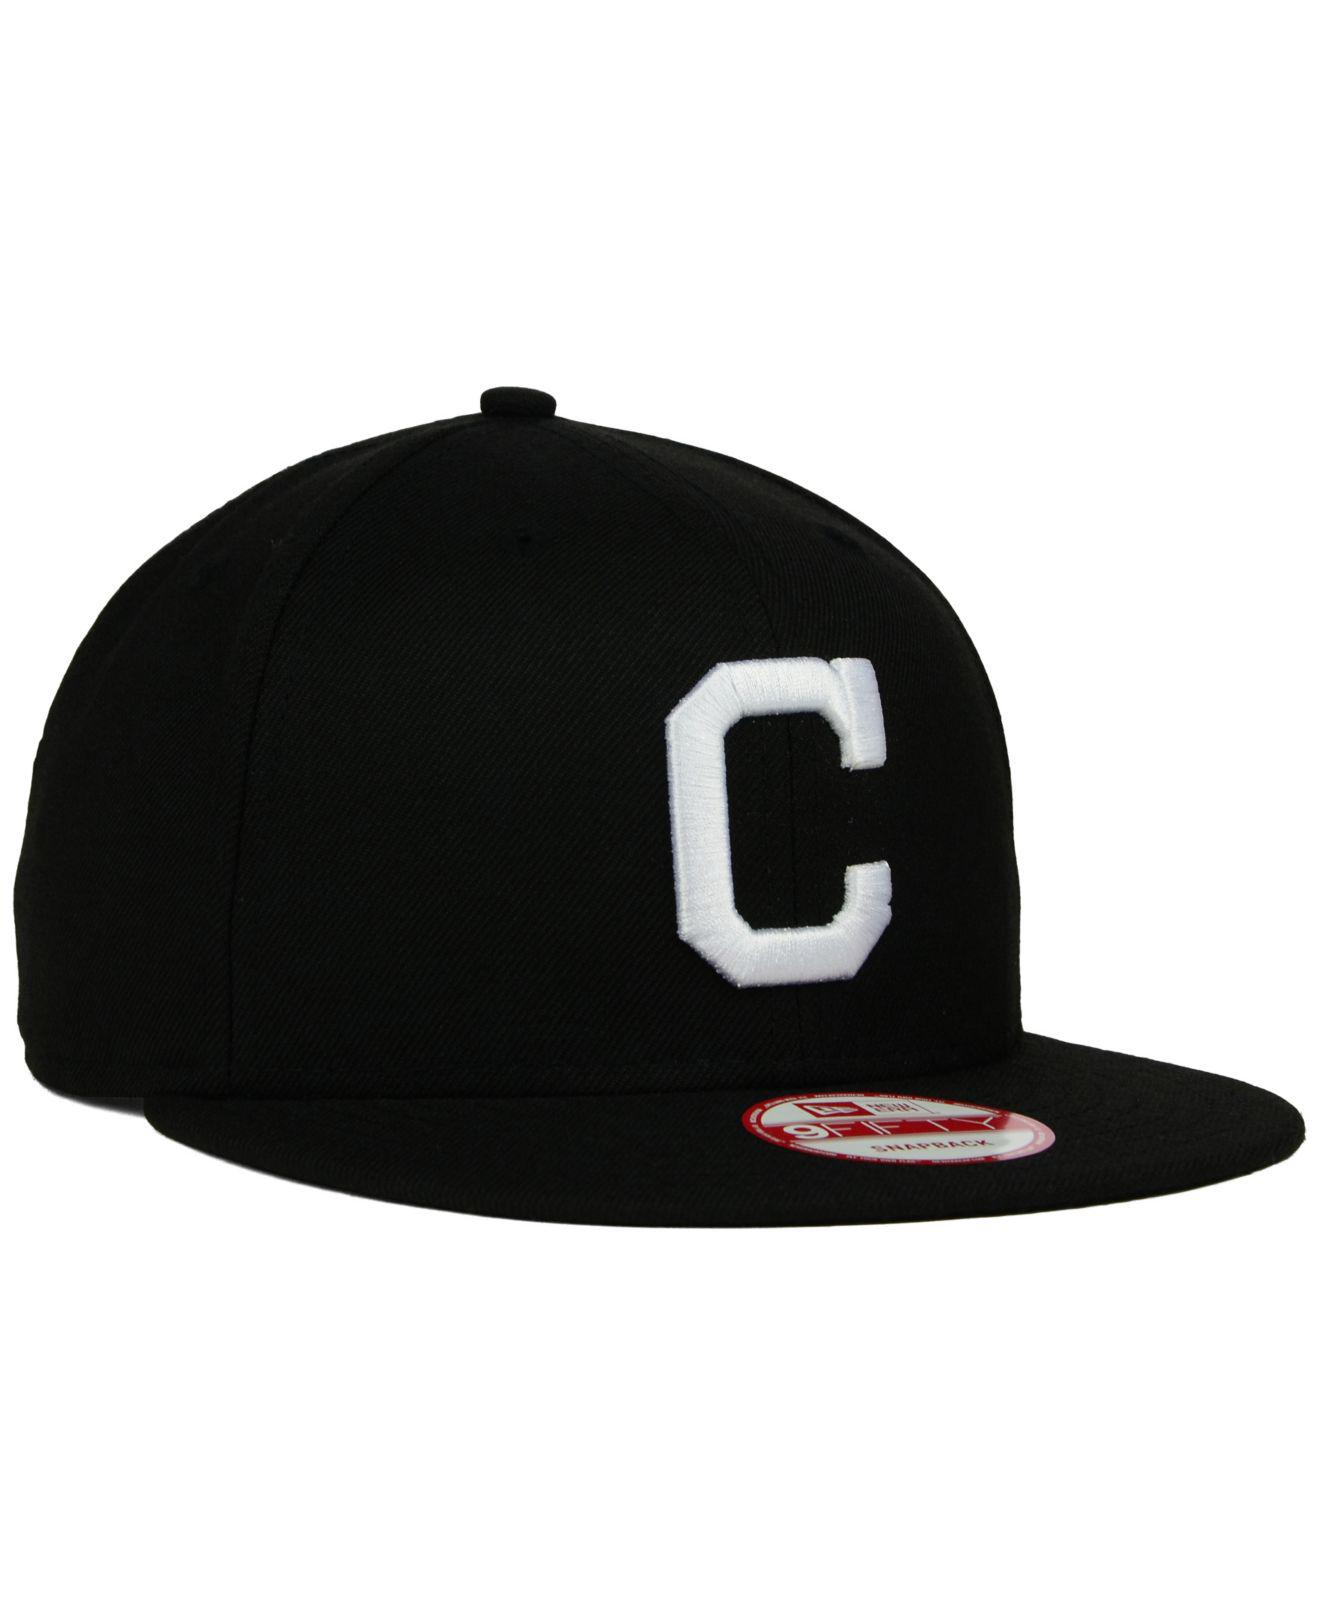 new product 4a42d 7f9be ... closeout cleveland indians b dub 9fifty snapback cap for men lyst. view  fullscreen a0031 6f0f9